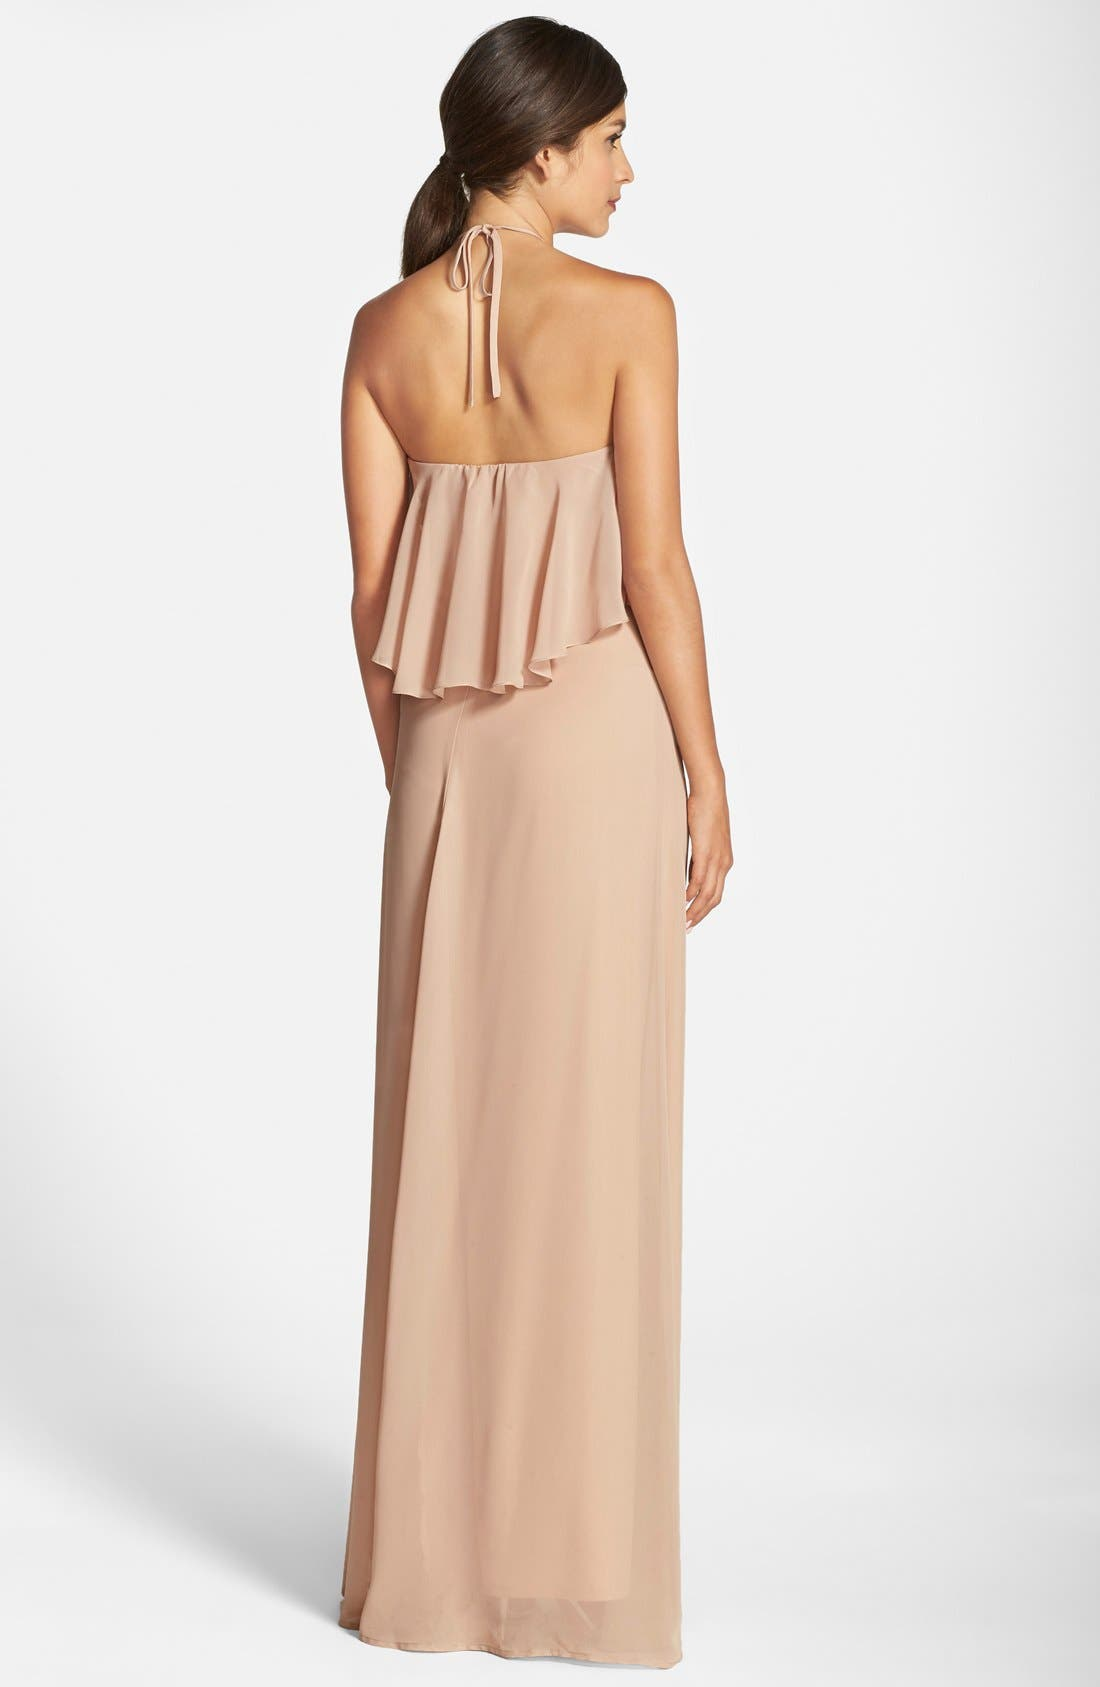 Amsale bridesmaid dresses nordstrom ombrellifo Choice Image